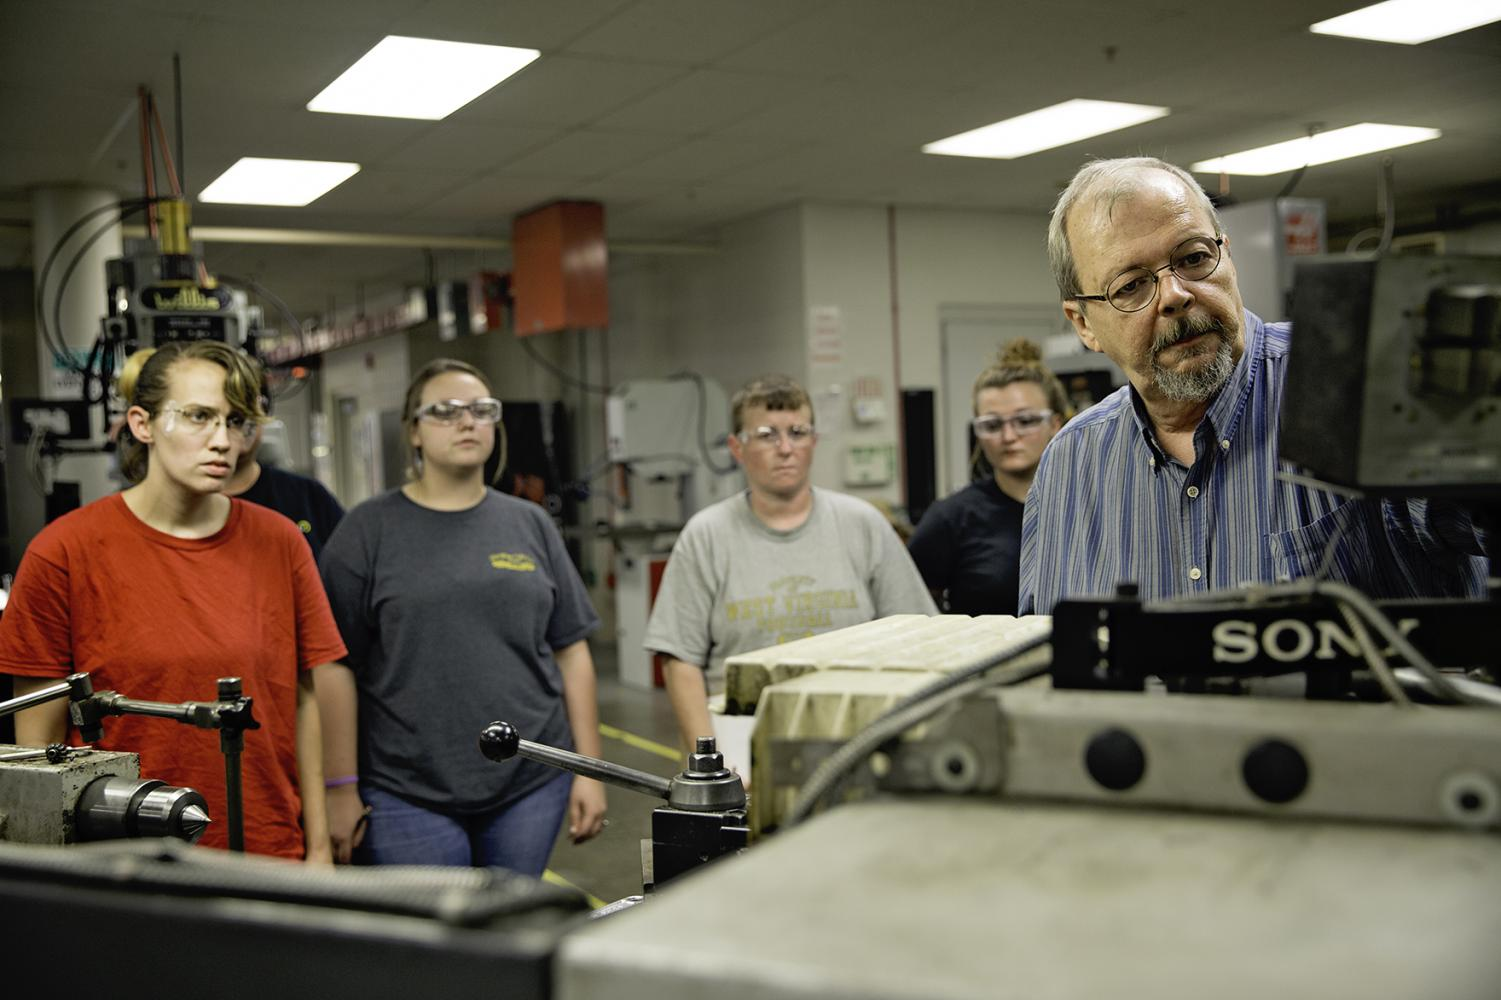 Machinist instructor Rick Smoot, right, demonstrates the proper use of a digital readout screen on the Clausing engine lathe for students in the Step Up for Women Pre-Apprenticeship Program at RCBI.